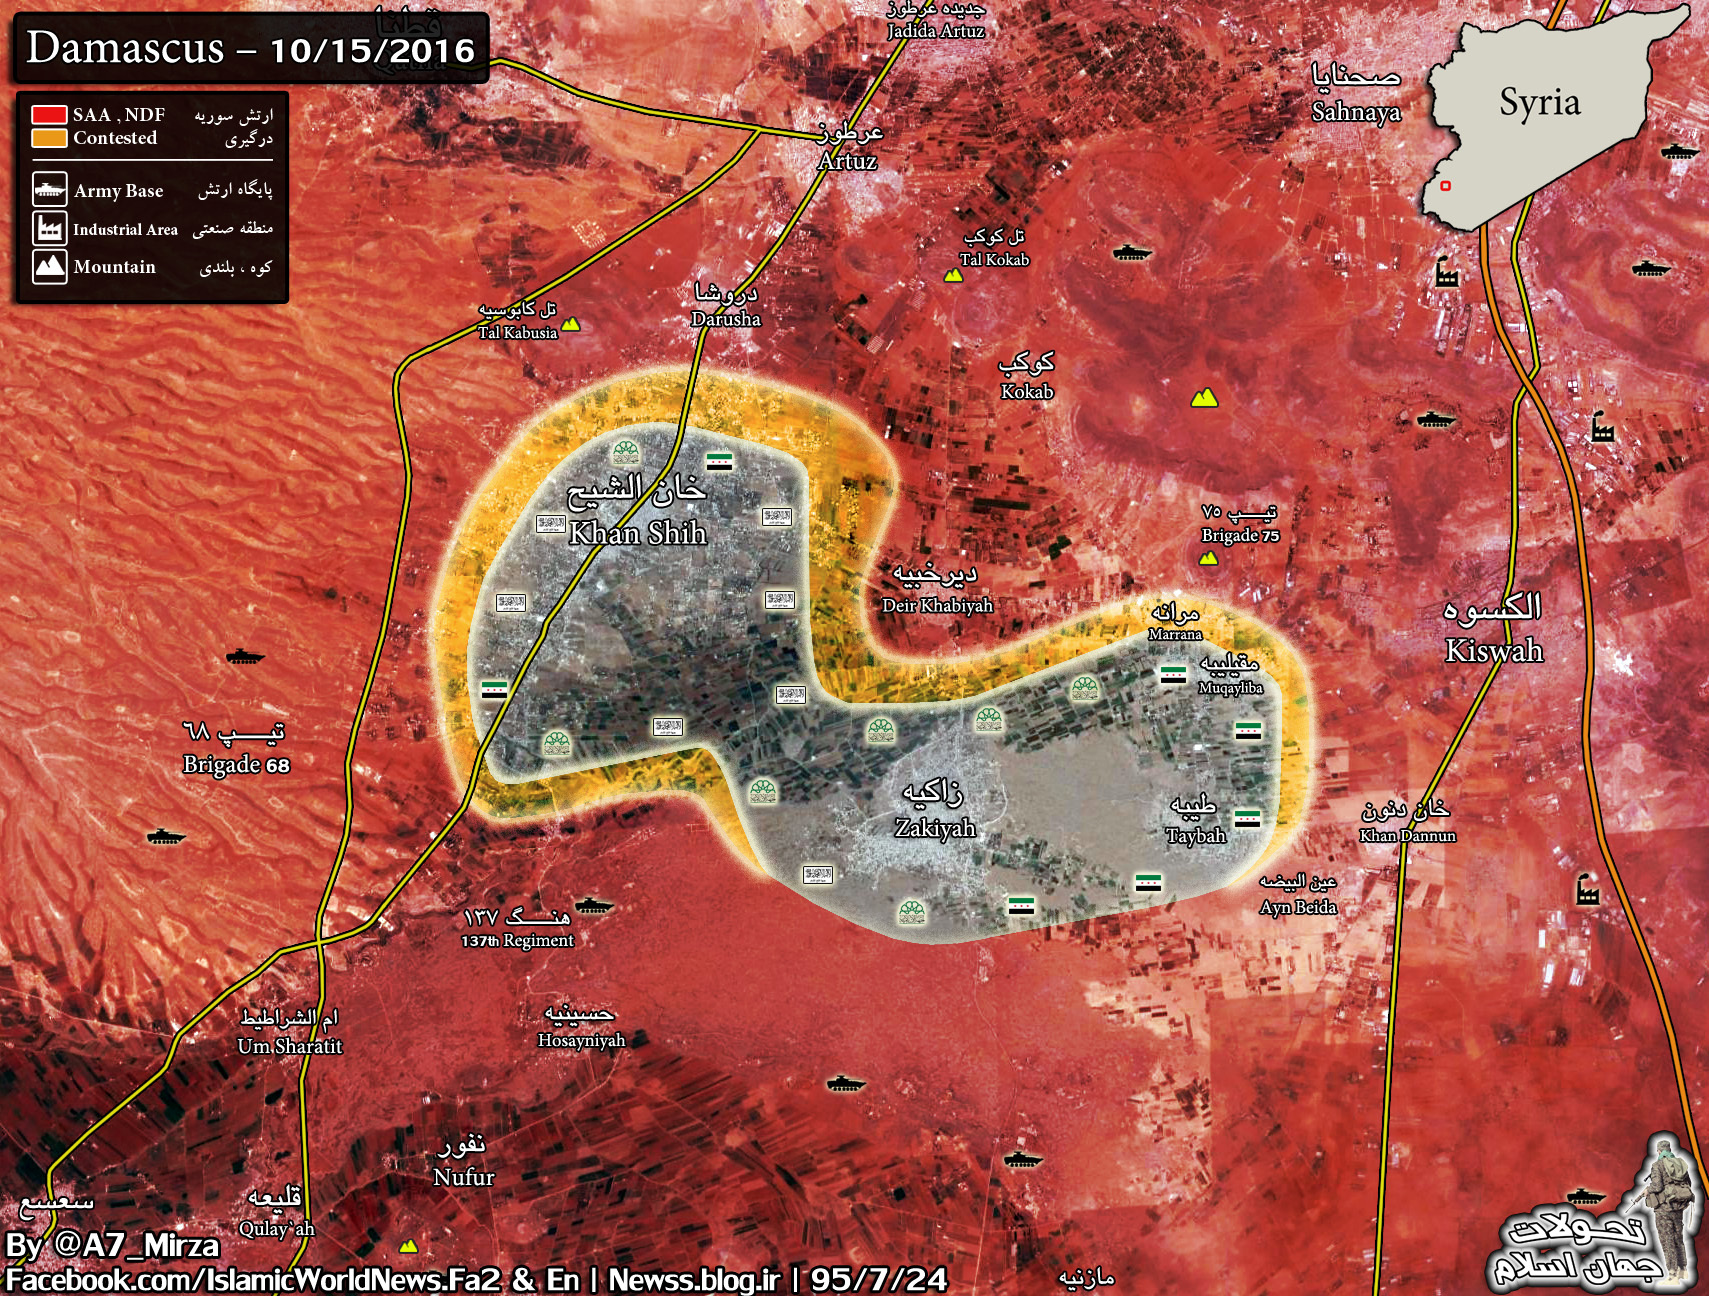 Map Update: Military Situation in Damascus's Western Ghouta